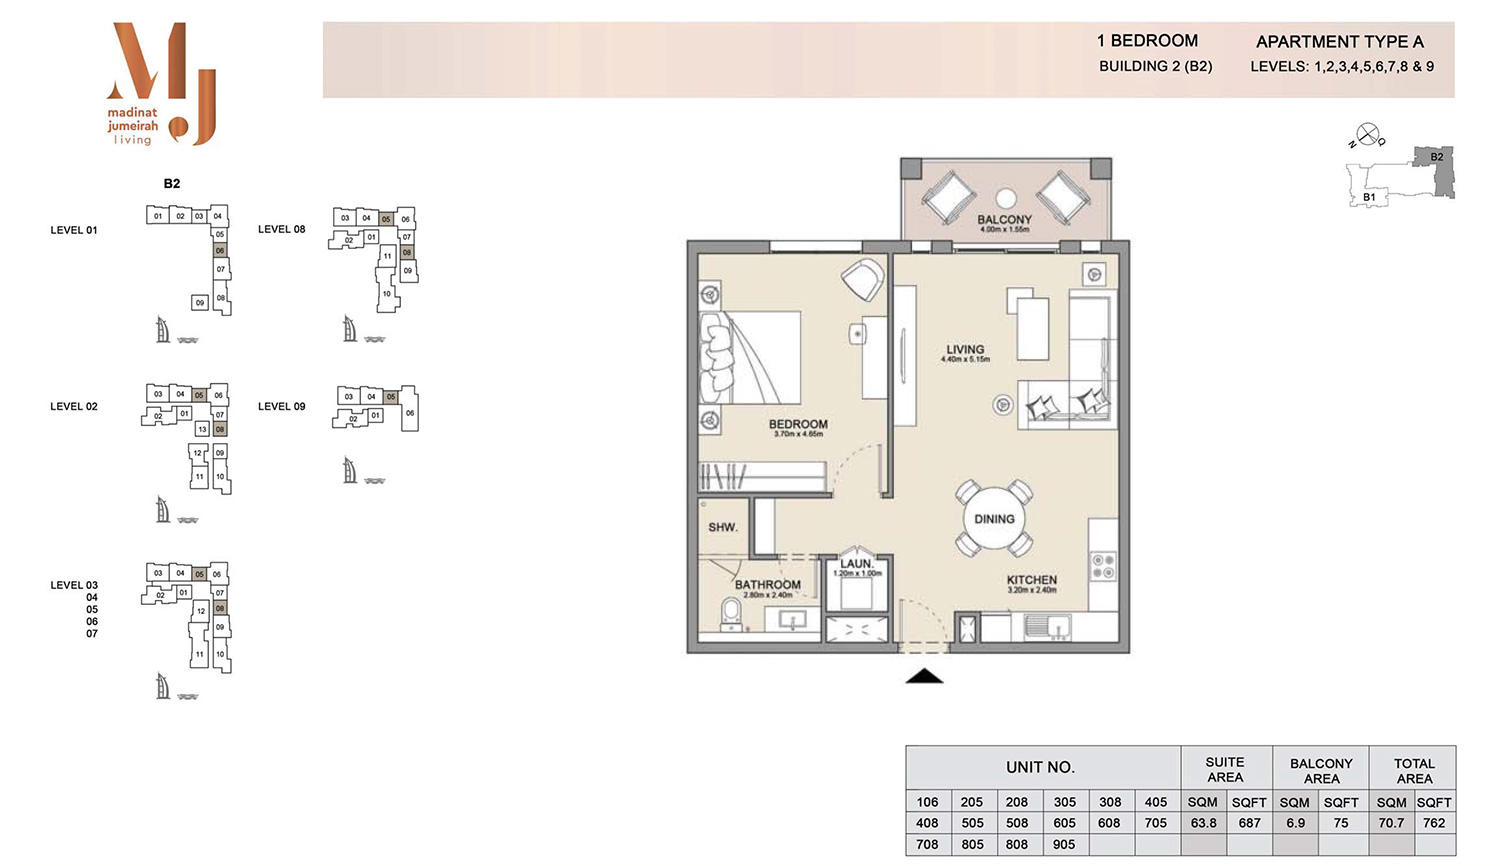 1 Bedroom Building 2, Type A, Levels 1 to 9, Size 762 sq.ft